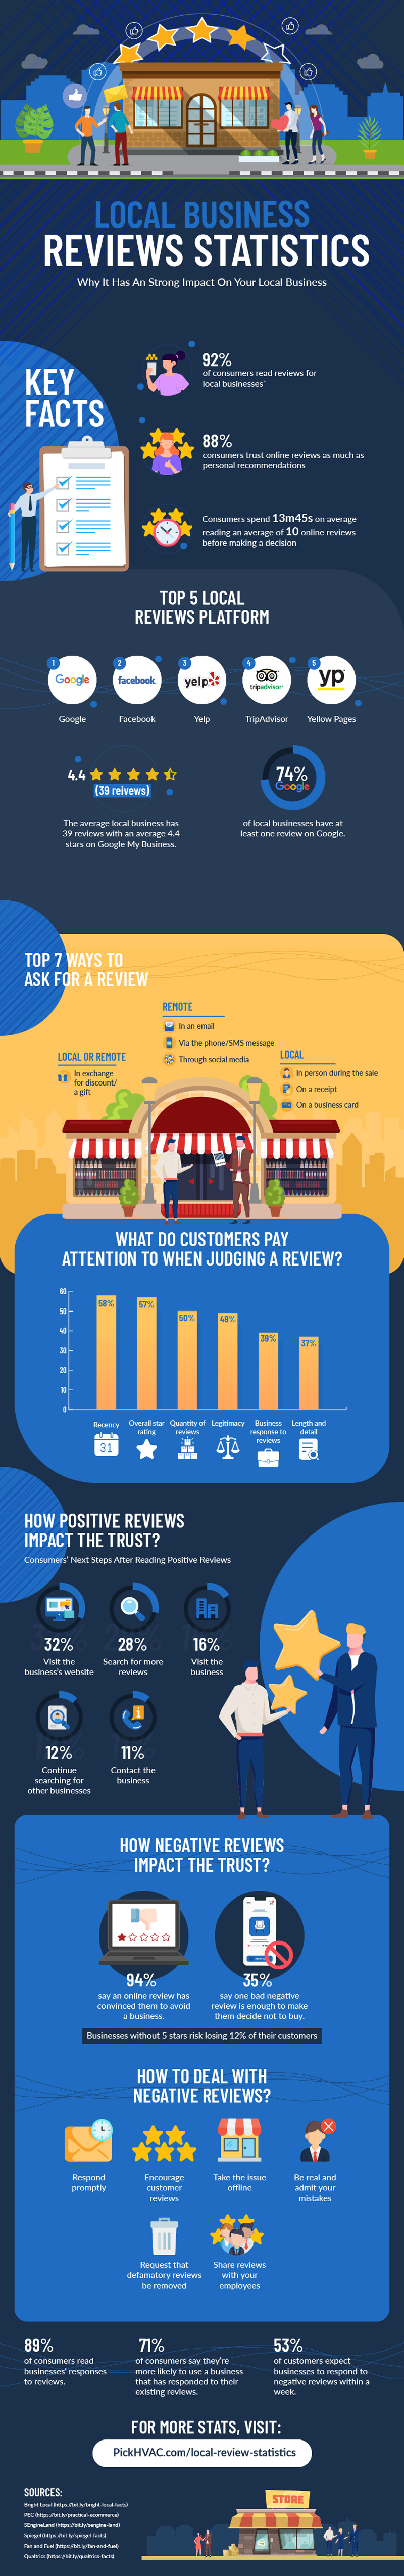 Local Business Reviews Statistics